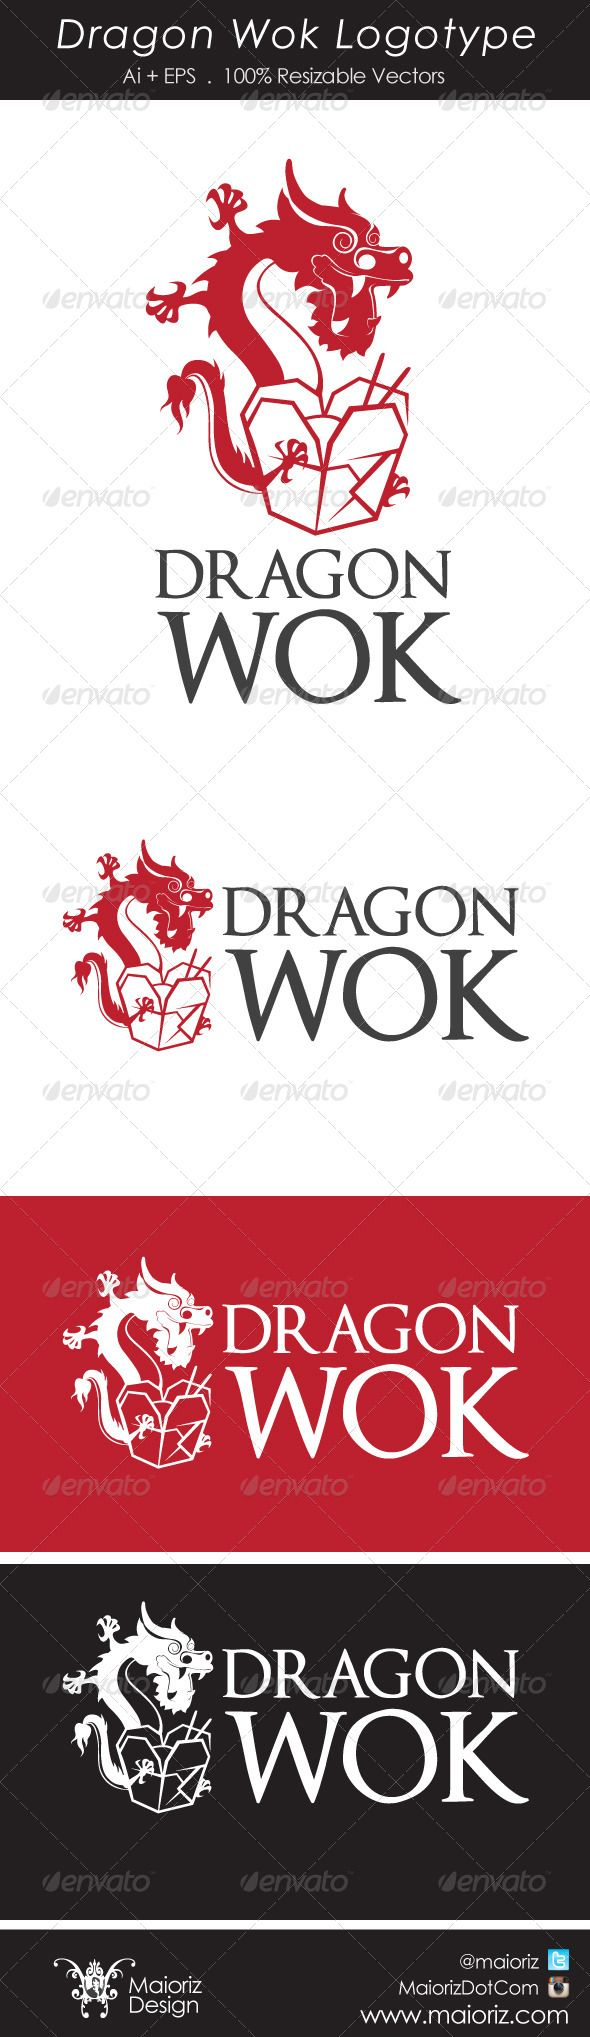 Dragon Wok Logotype ...  brand, business, chinese, chinesse, city, company, cuisine, delivery, dinner, dragon, fast food, food, gastronomy, gourmet, id logo, logotype, lunch, meal, restaurant, success, town food, trade mark, wok